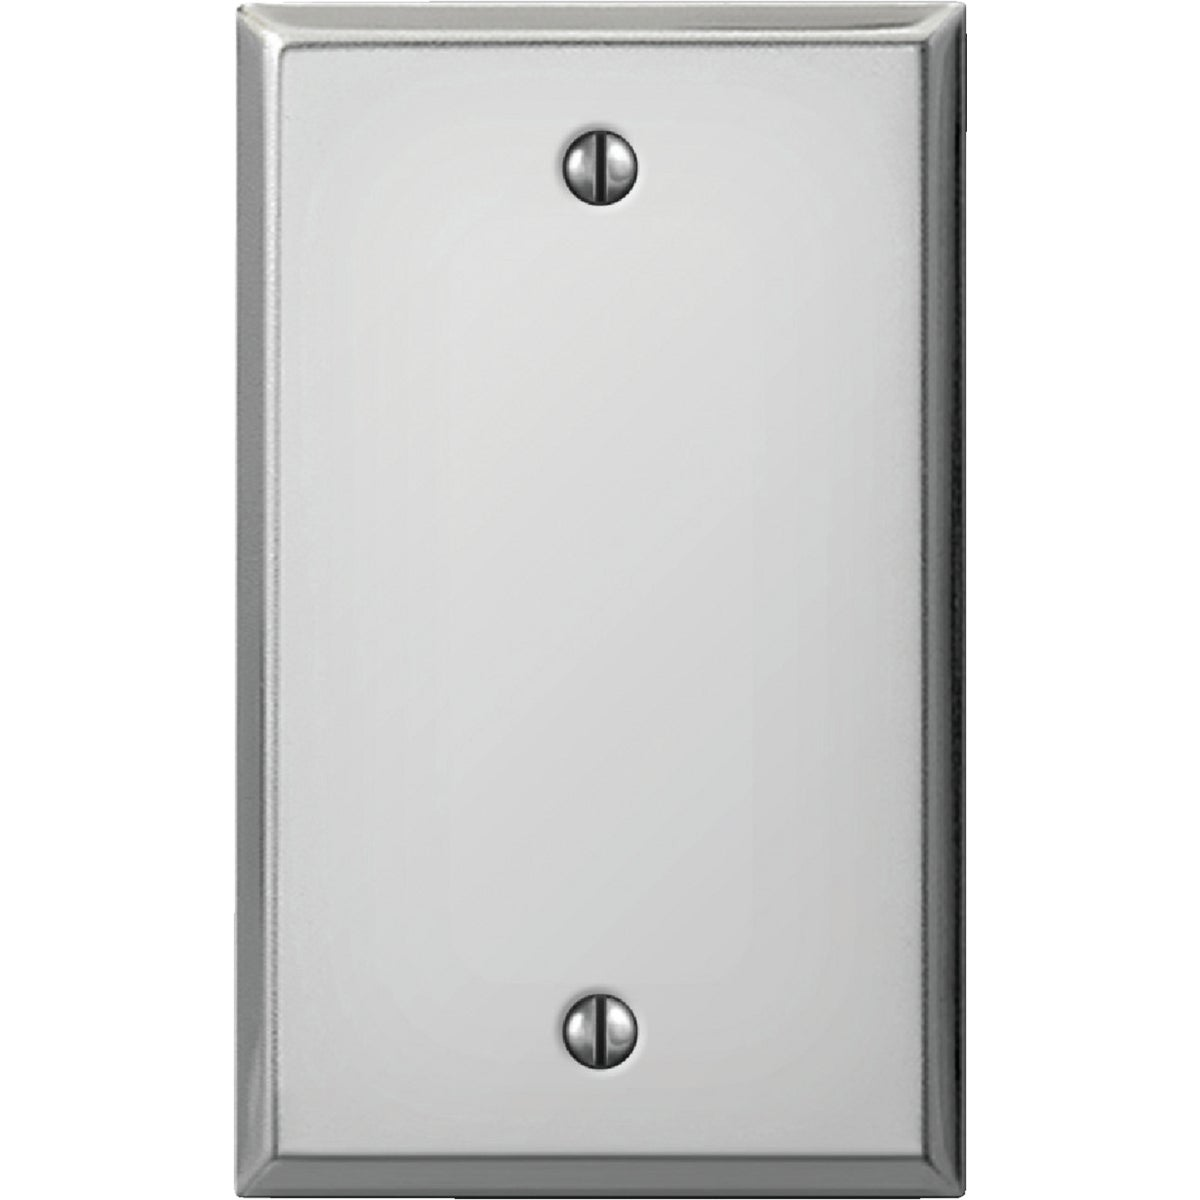 CHR BLANK STL WALL PLATE - 8CS100 by Jackson Deerfield Mf